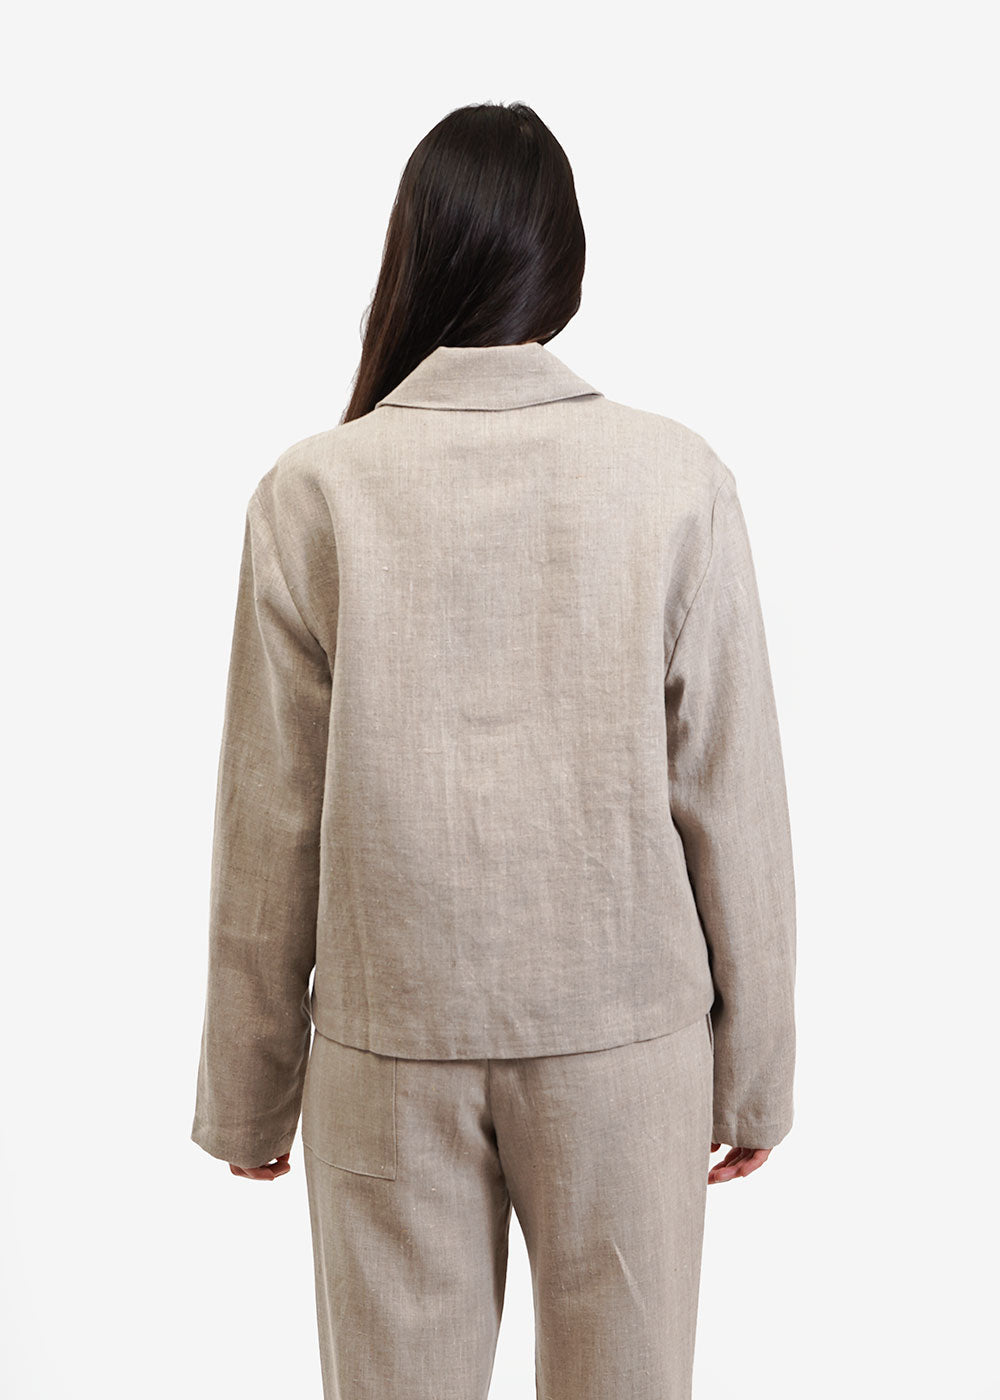 Paloma Wool Vincenzo Jacket — Shop sustainable fashion and slow fashion at New Classics Studios